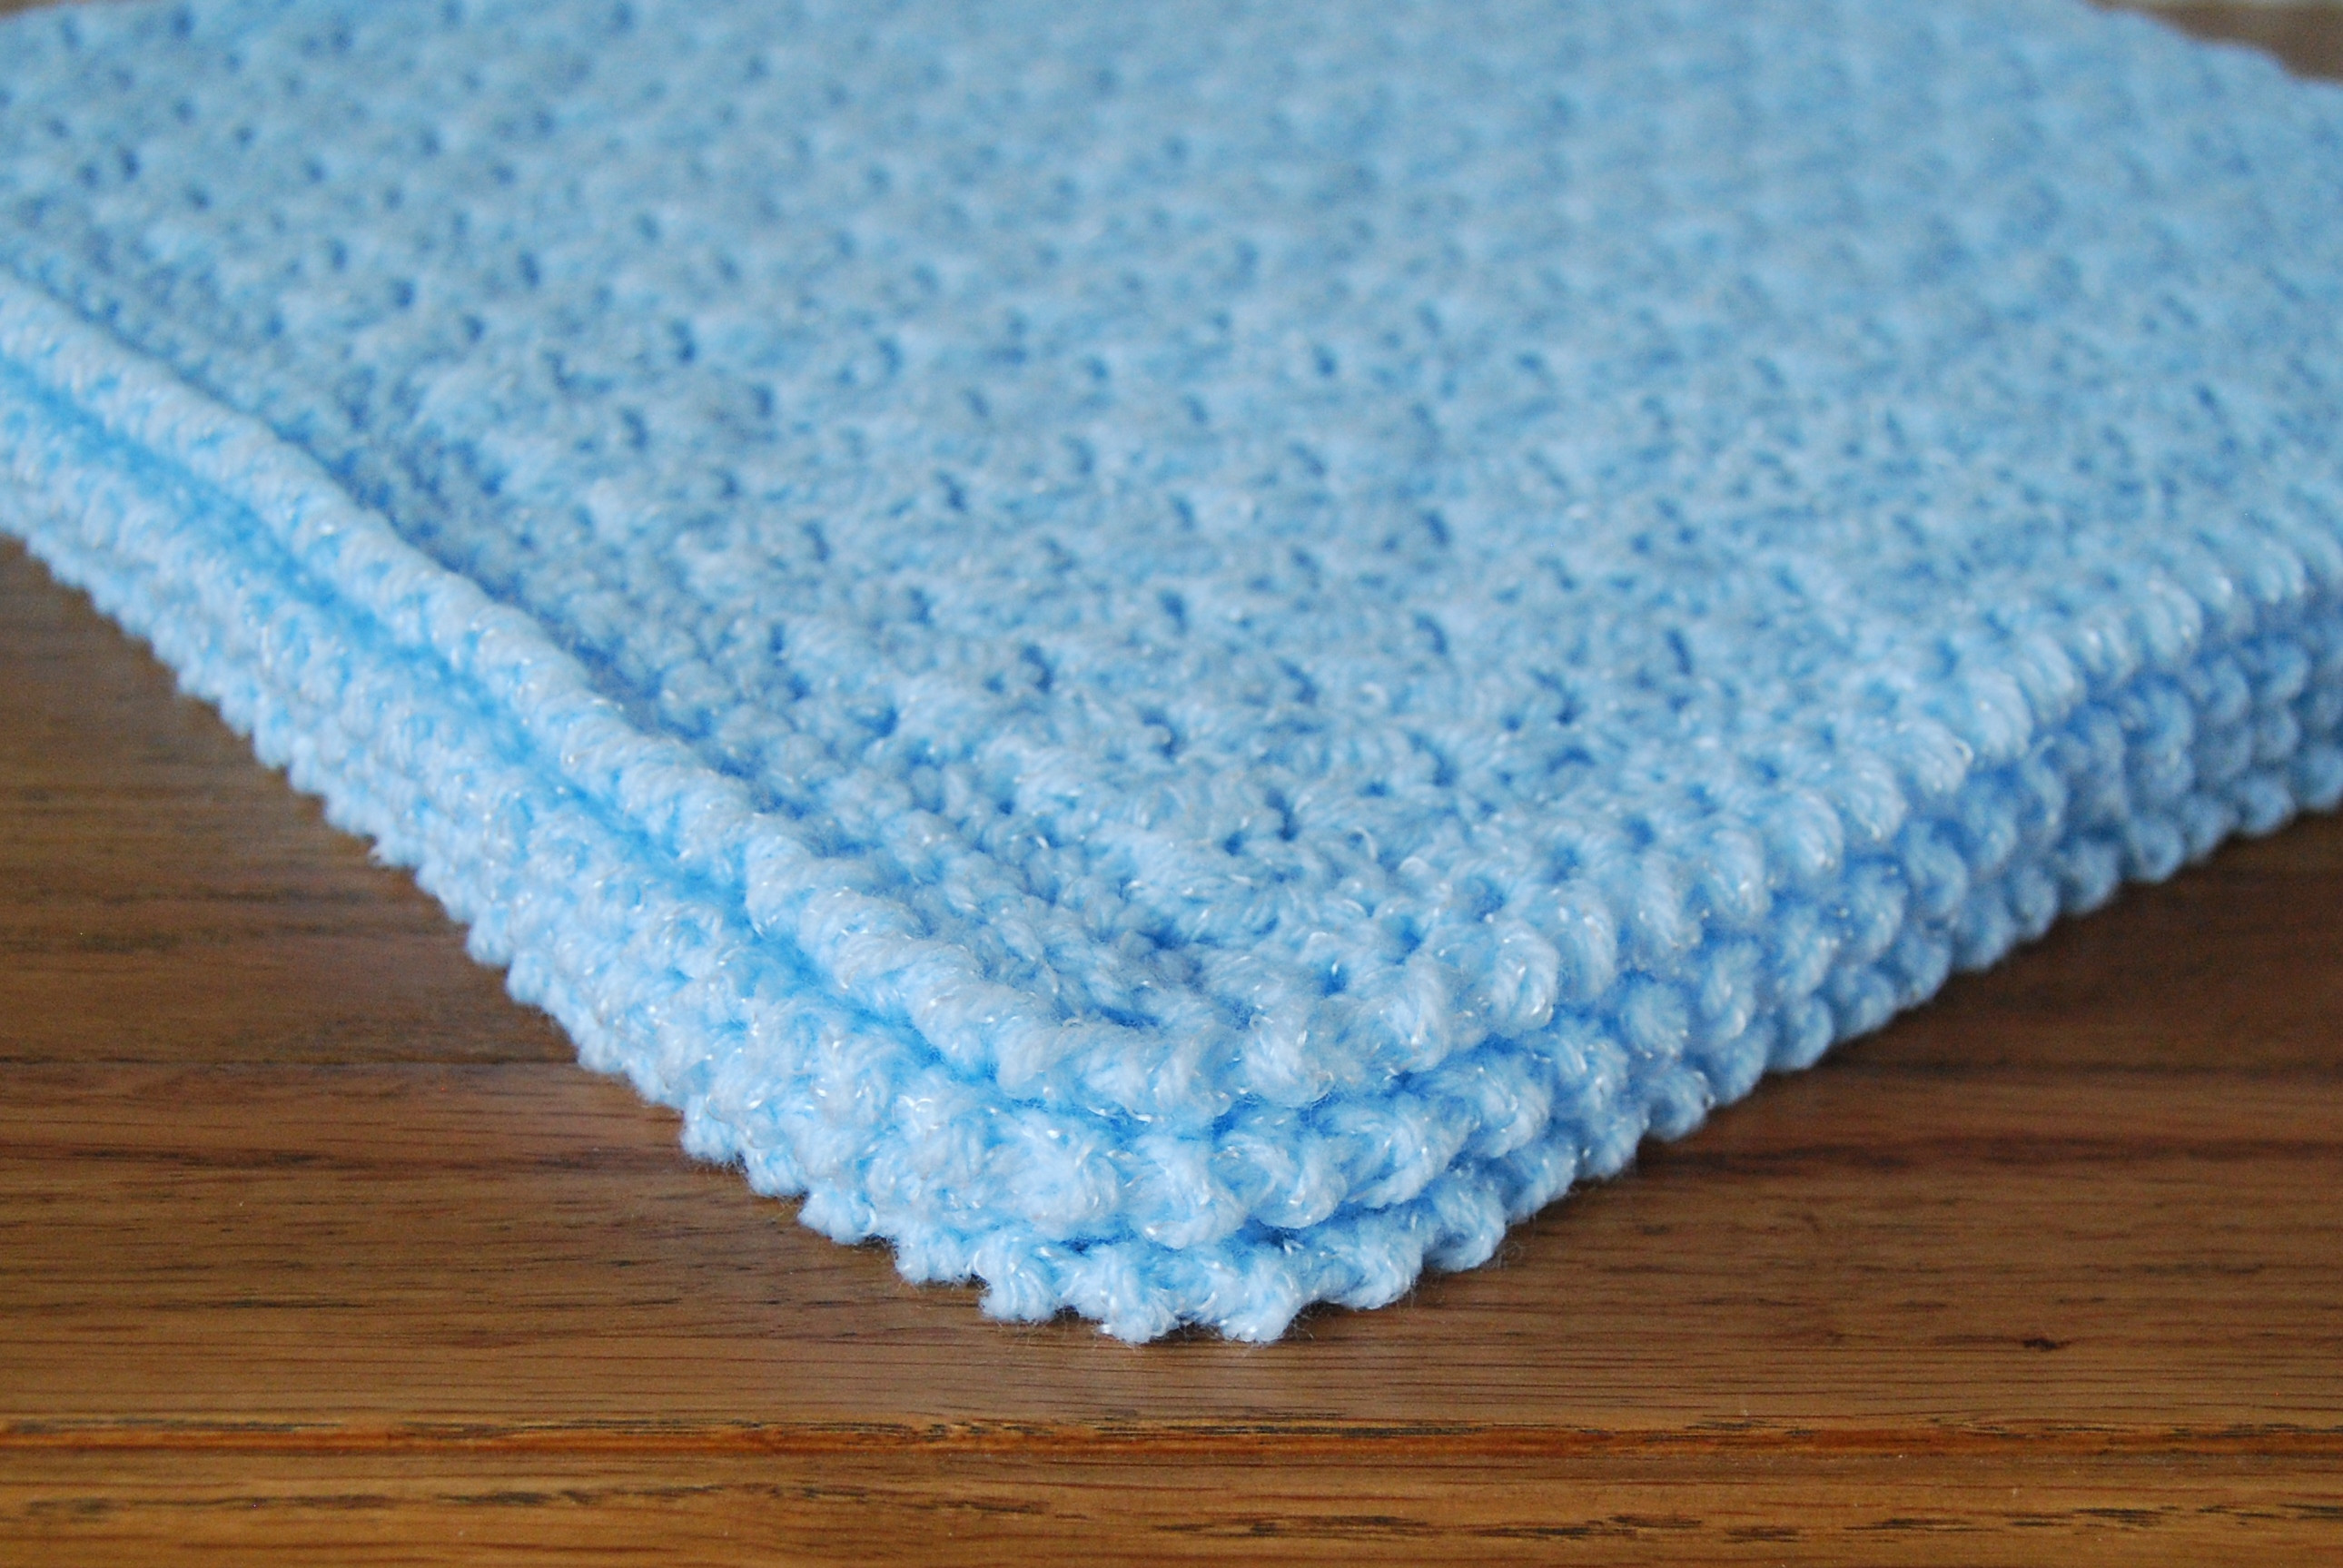 Baby Boy Crochet Blanket Patterns Lovely Beautiful Baby Boy Blanket Crochet Pattern for Pram Of Baby Boy Crochet Blanket Patterns Lovely My Crochet Part 395